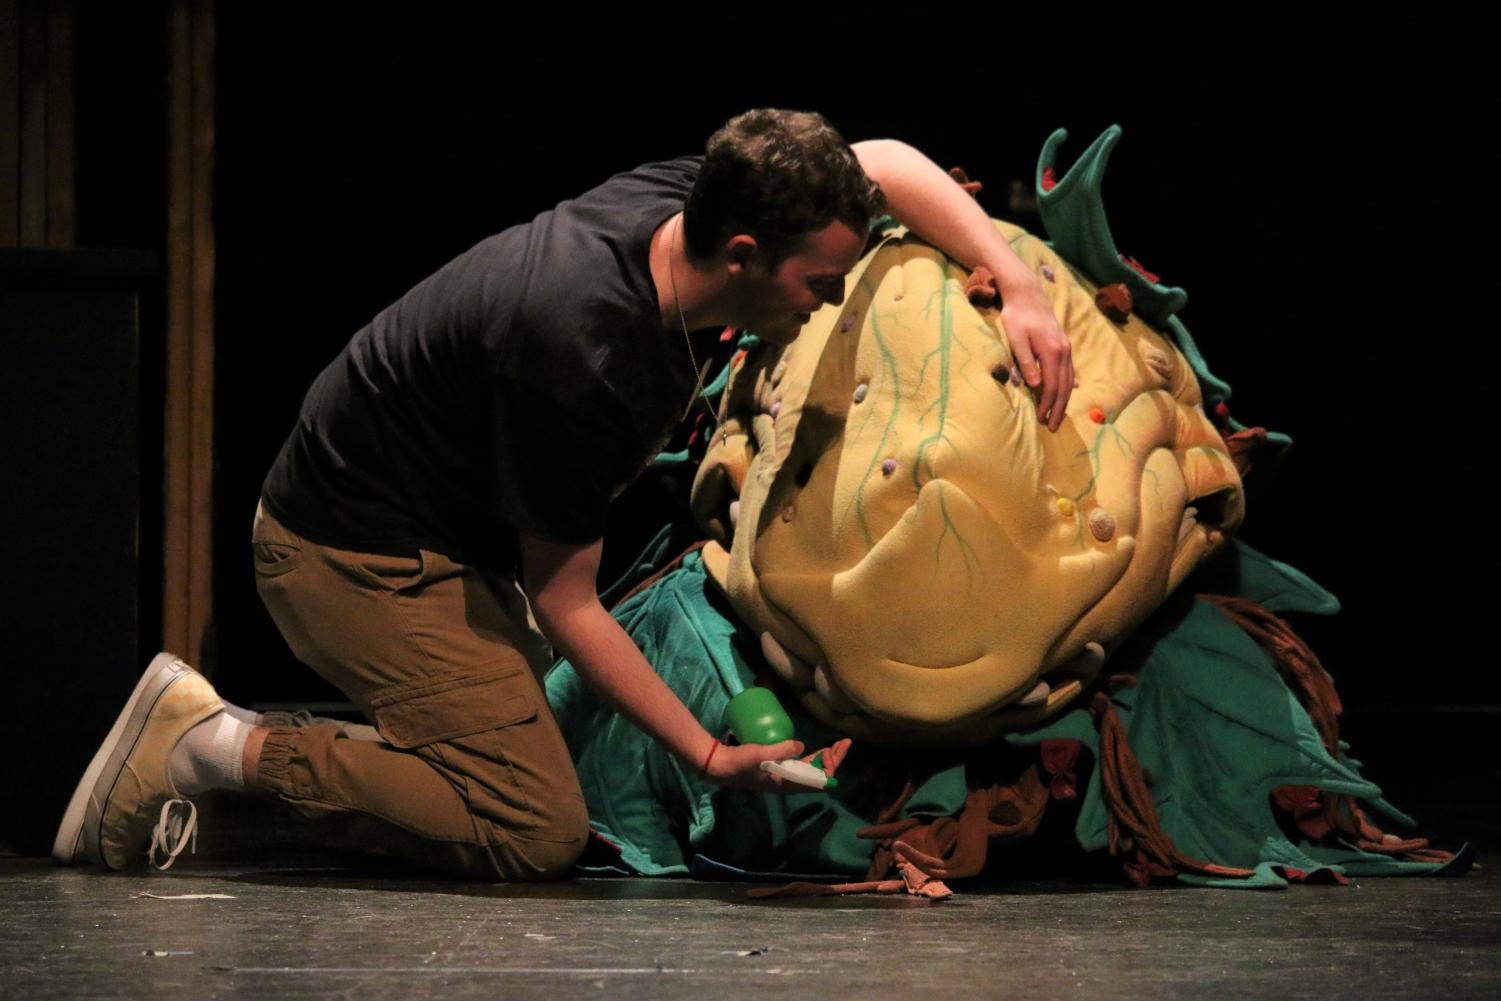 Douglas Pomin rehearses as Seymour with Audrey II in RHSTCo's latest production, Little Shop Of Horrors.